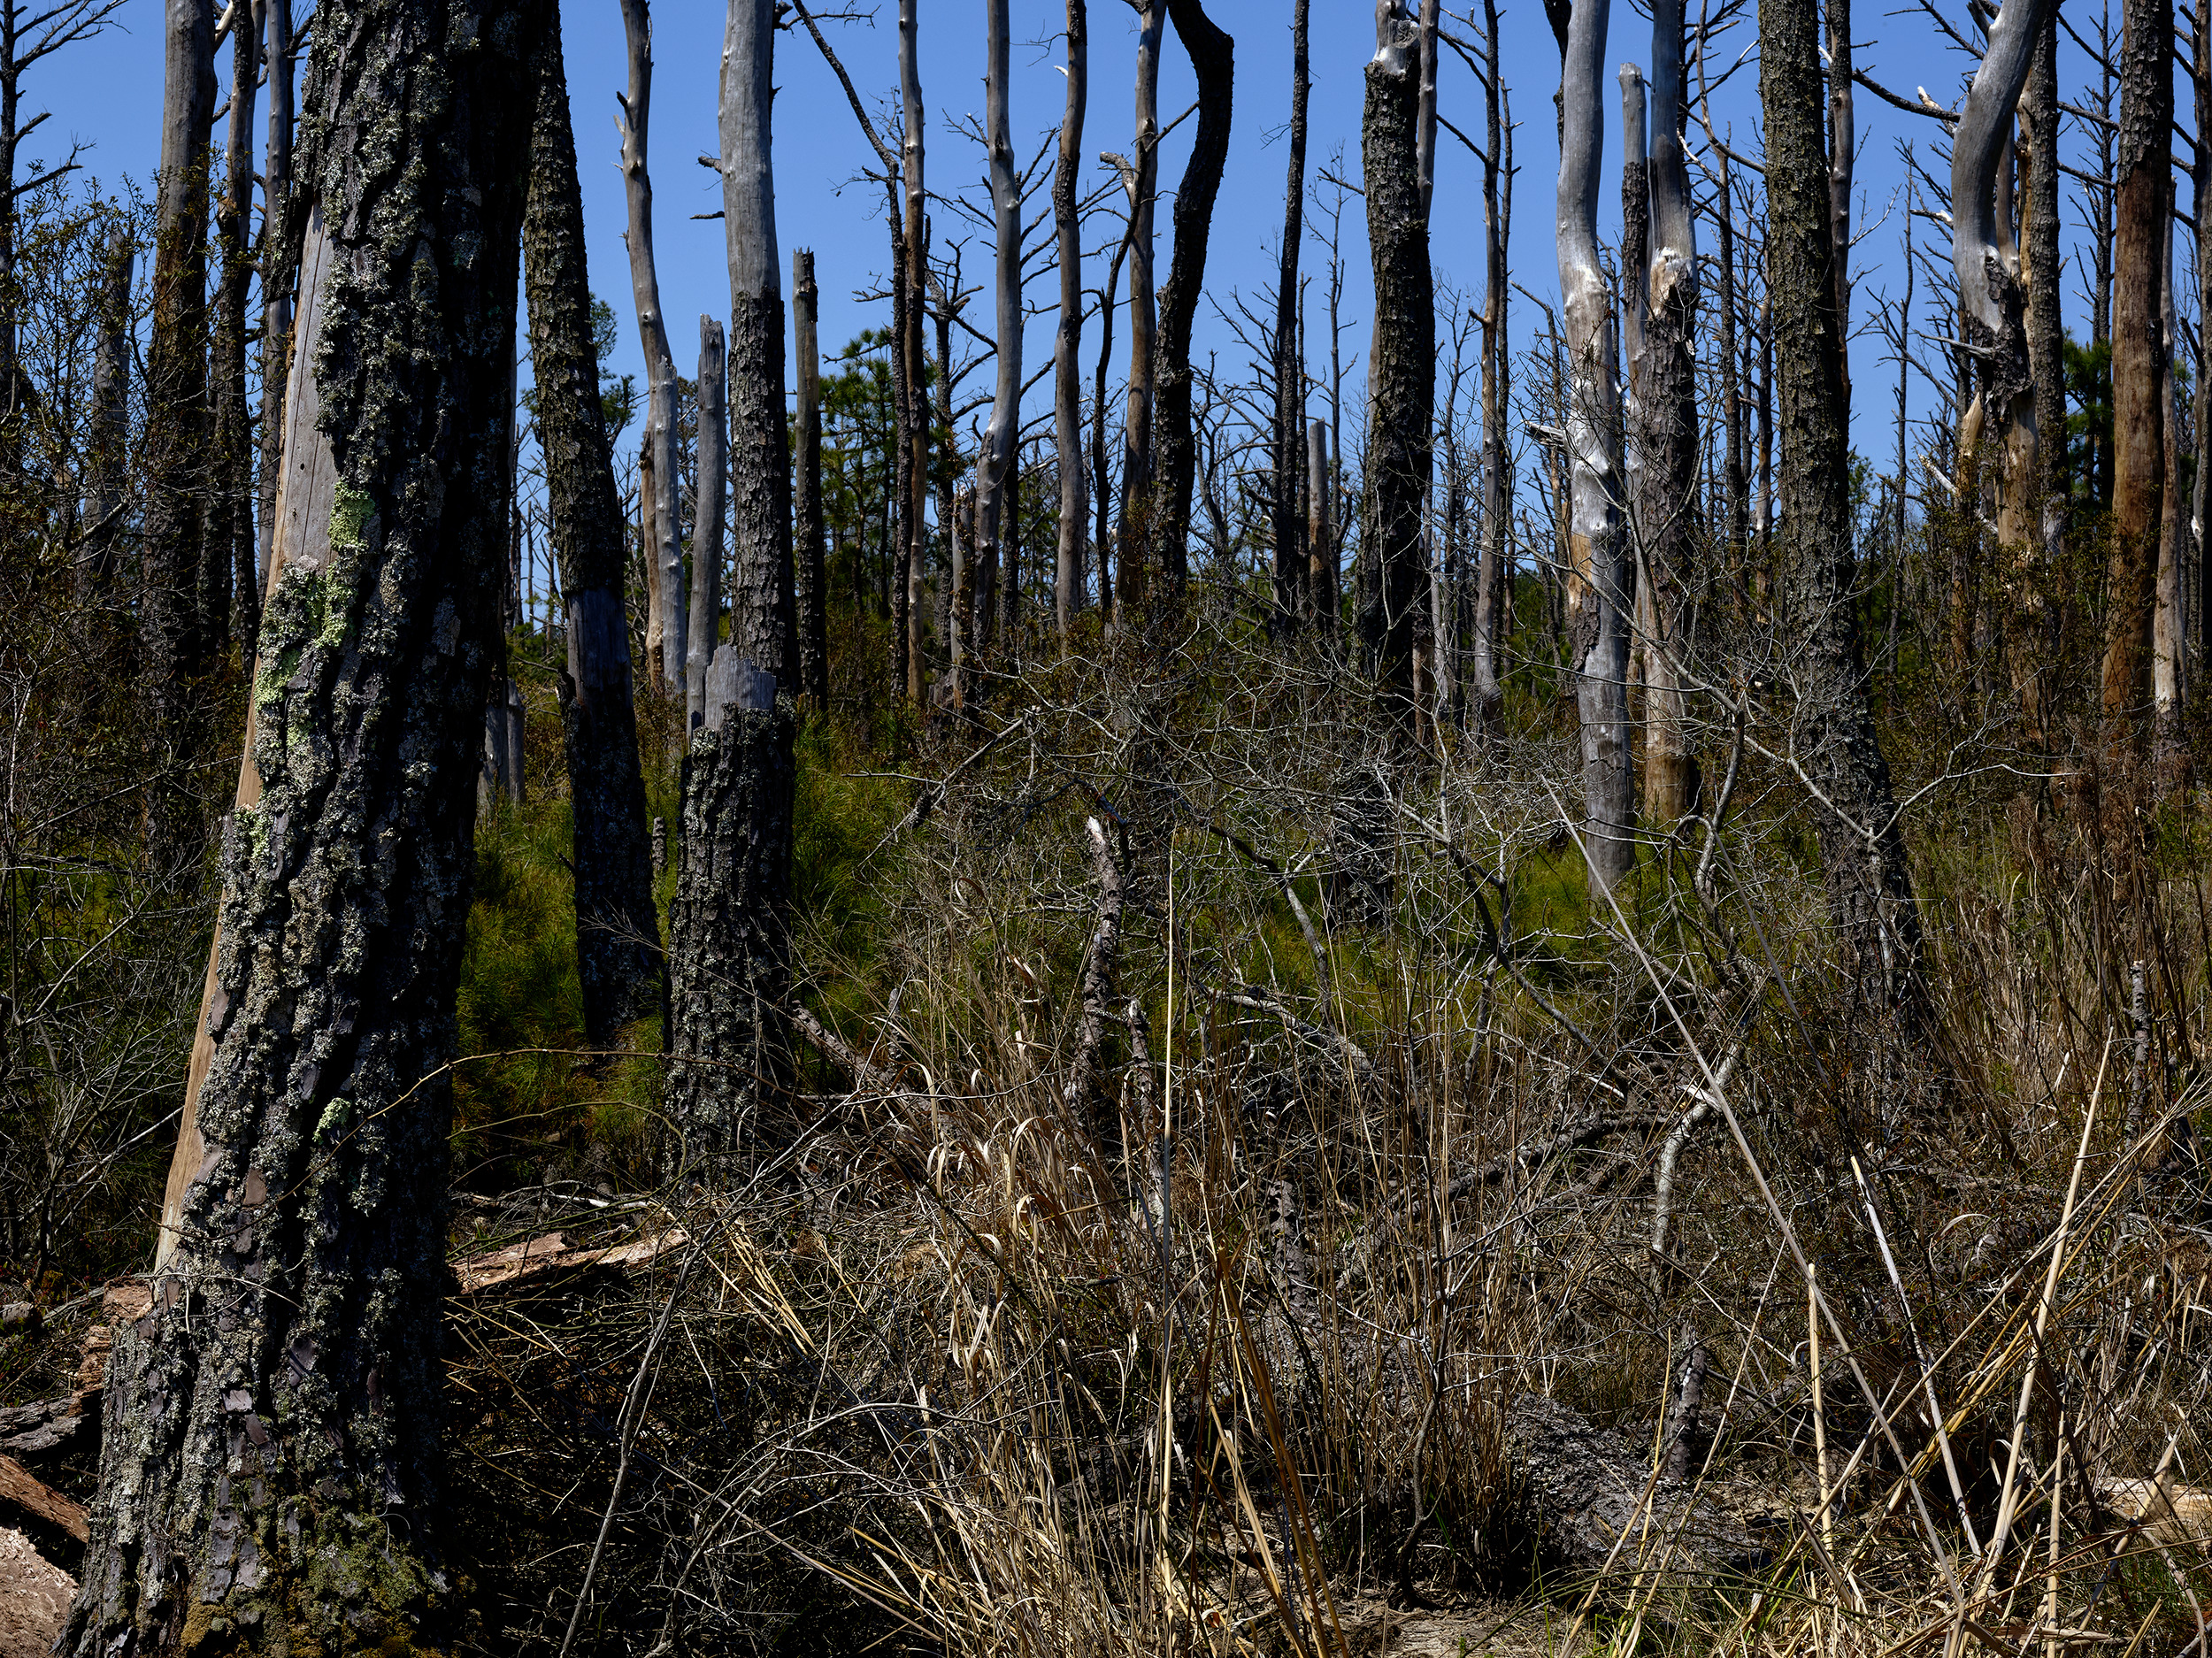 After Pine Beetle Invasion, Virginia District (2018)